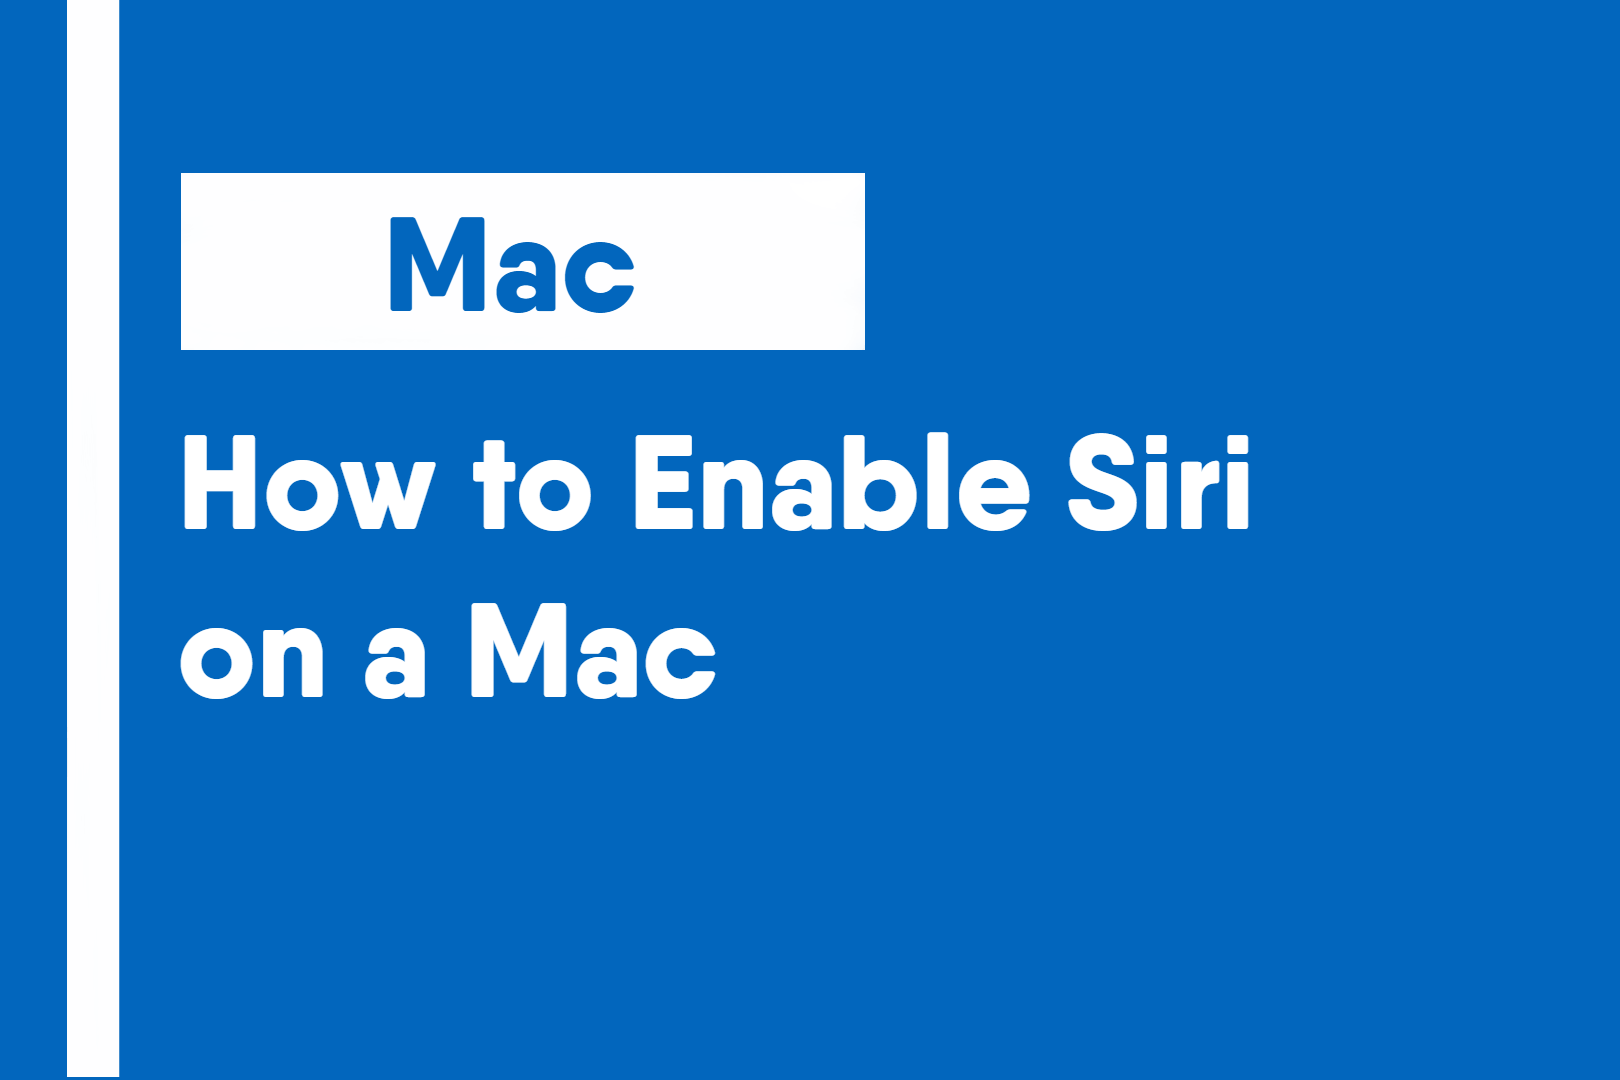 How to Enable Siri on a Mac 1